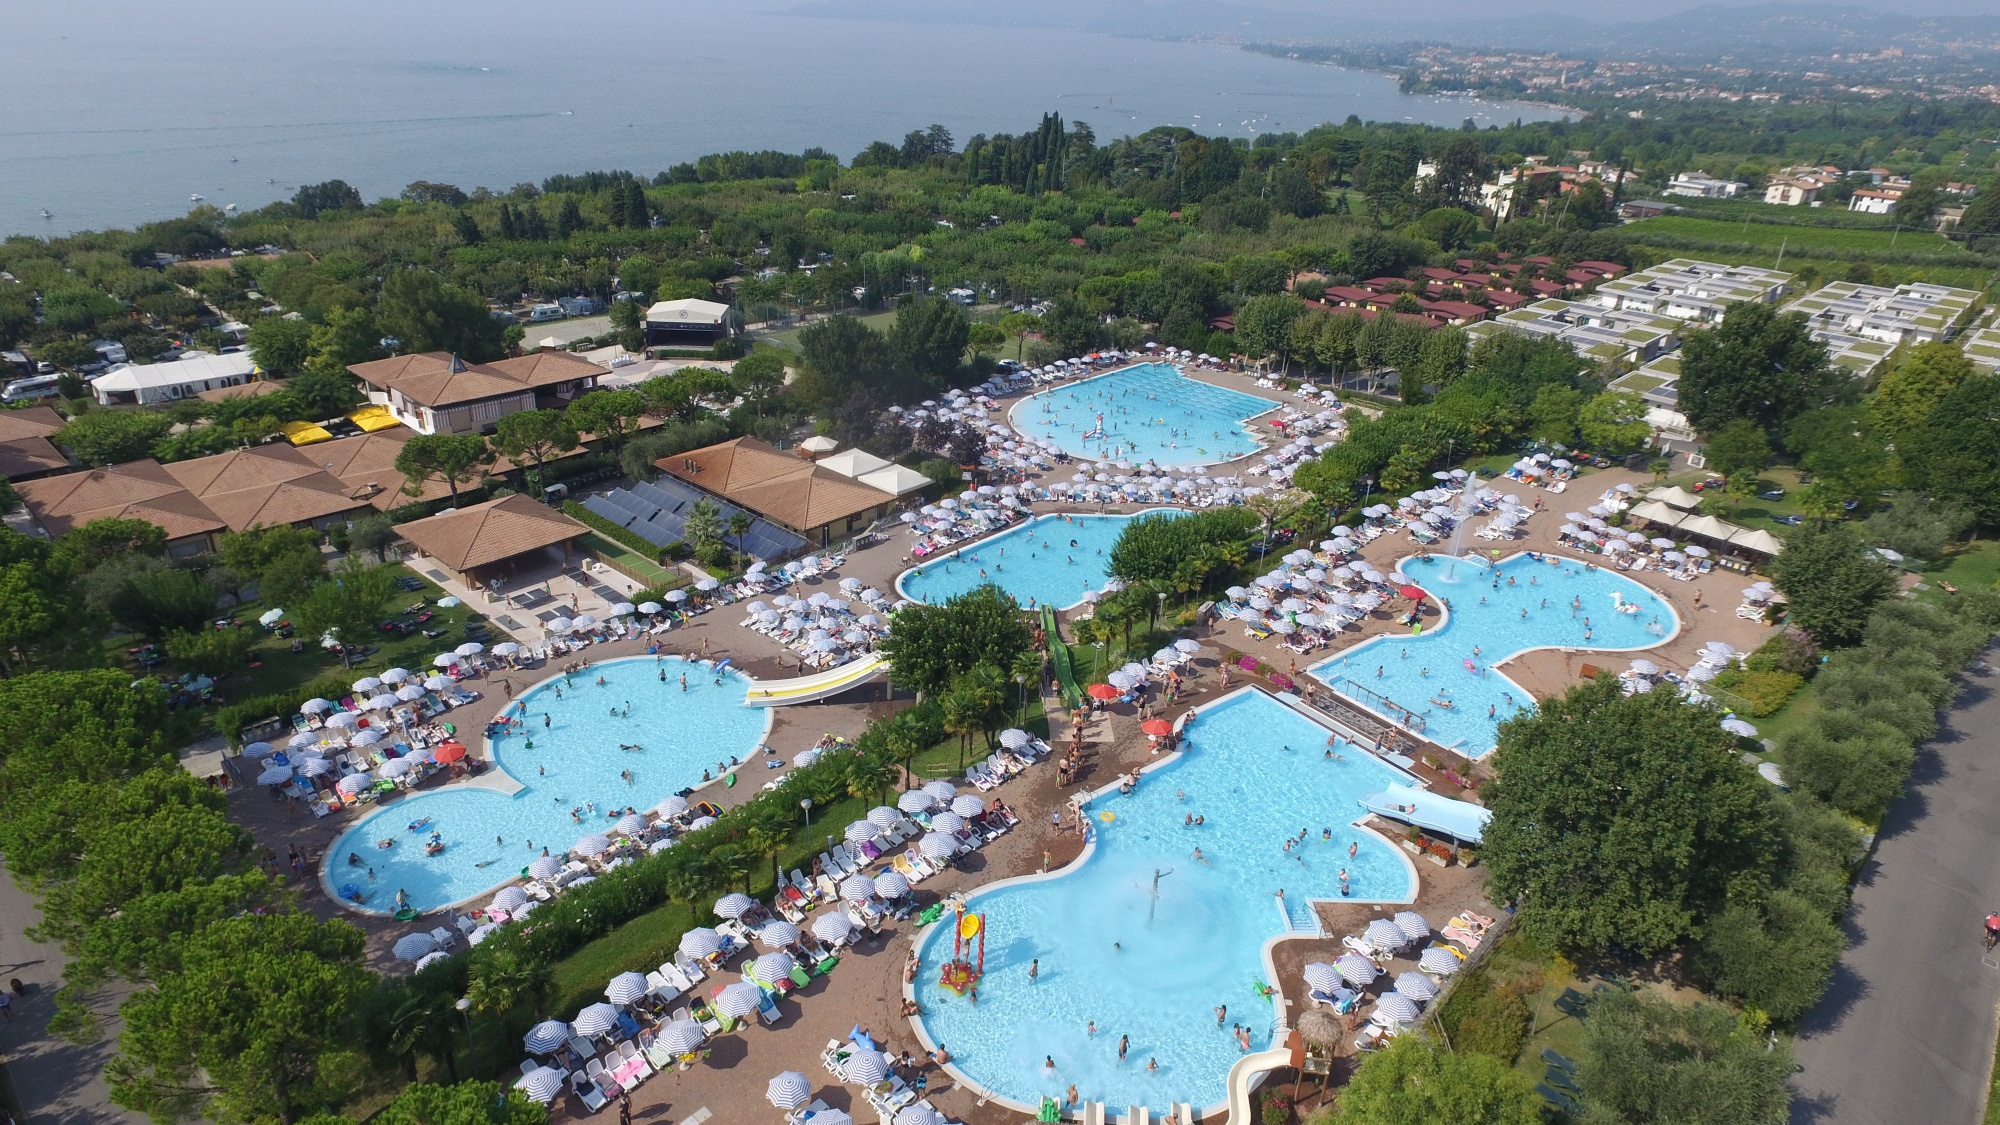 Piani di clodia holiday park lazise verona view all for Piani di coperta 20x20